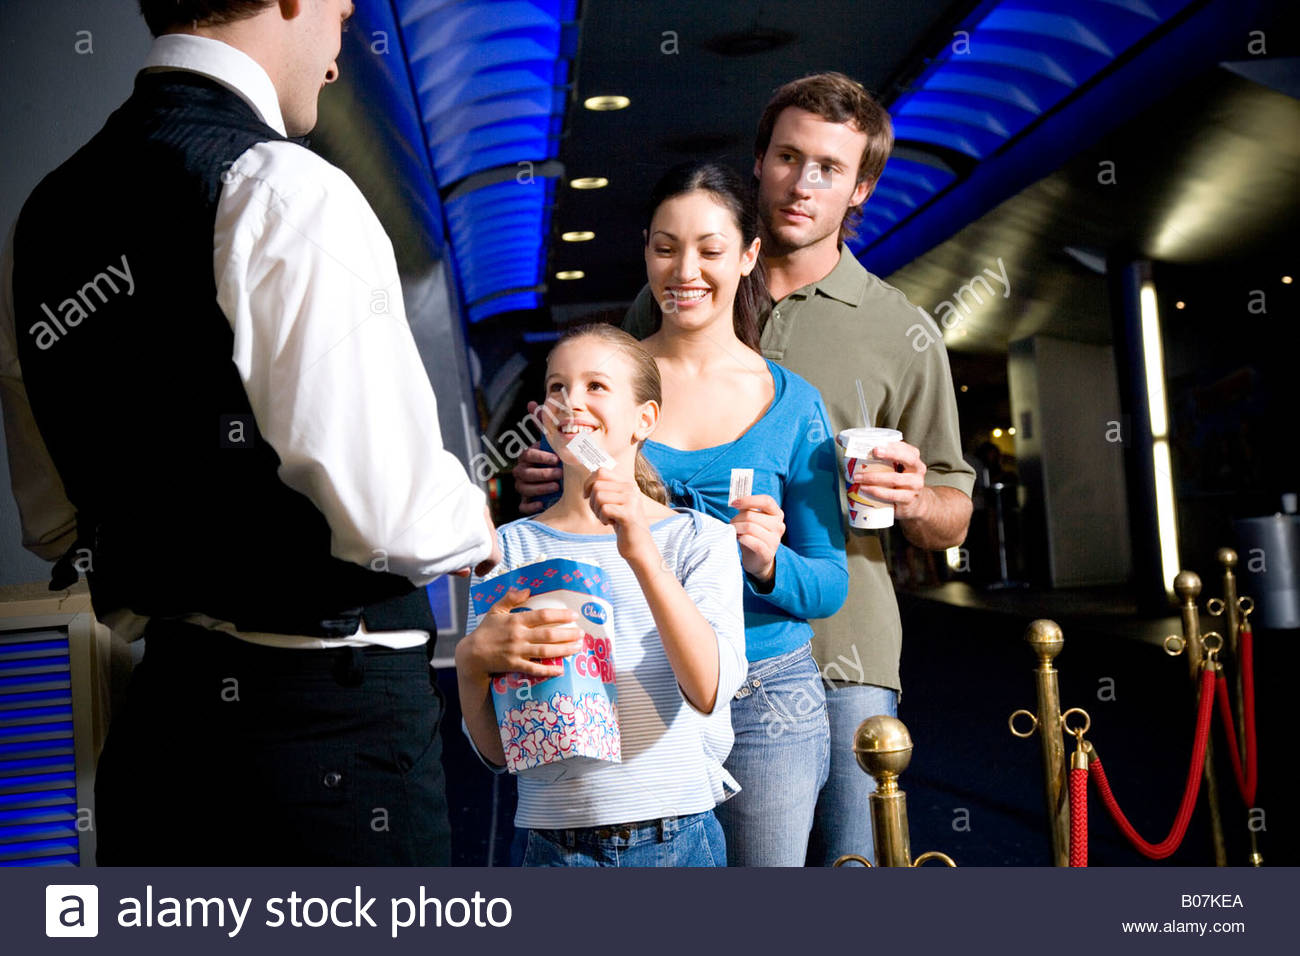 Family at the cinema handing tickets to the usher - Stock Image